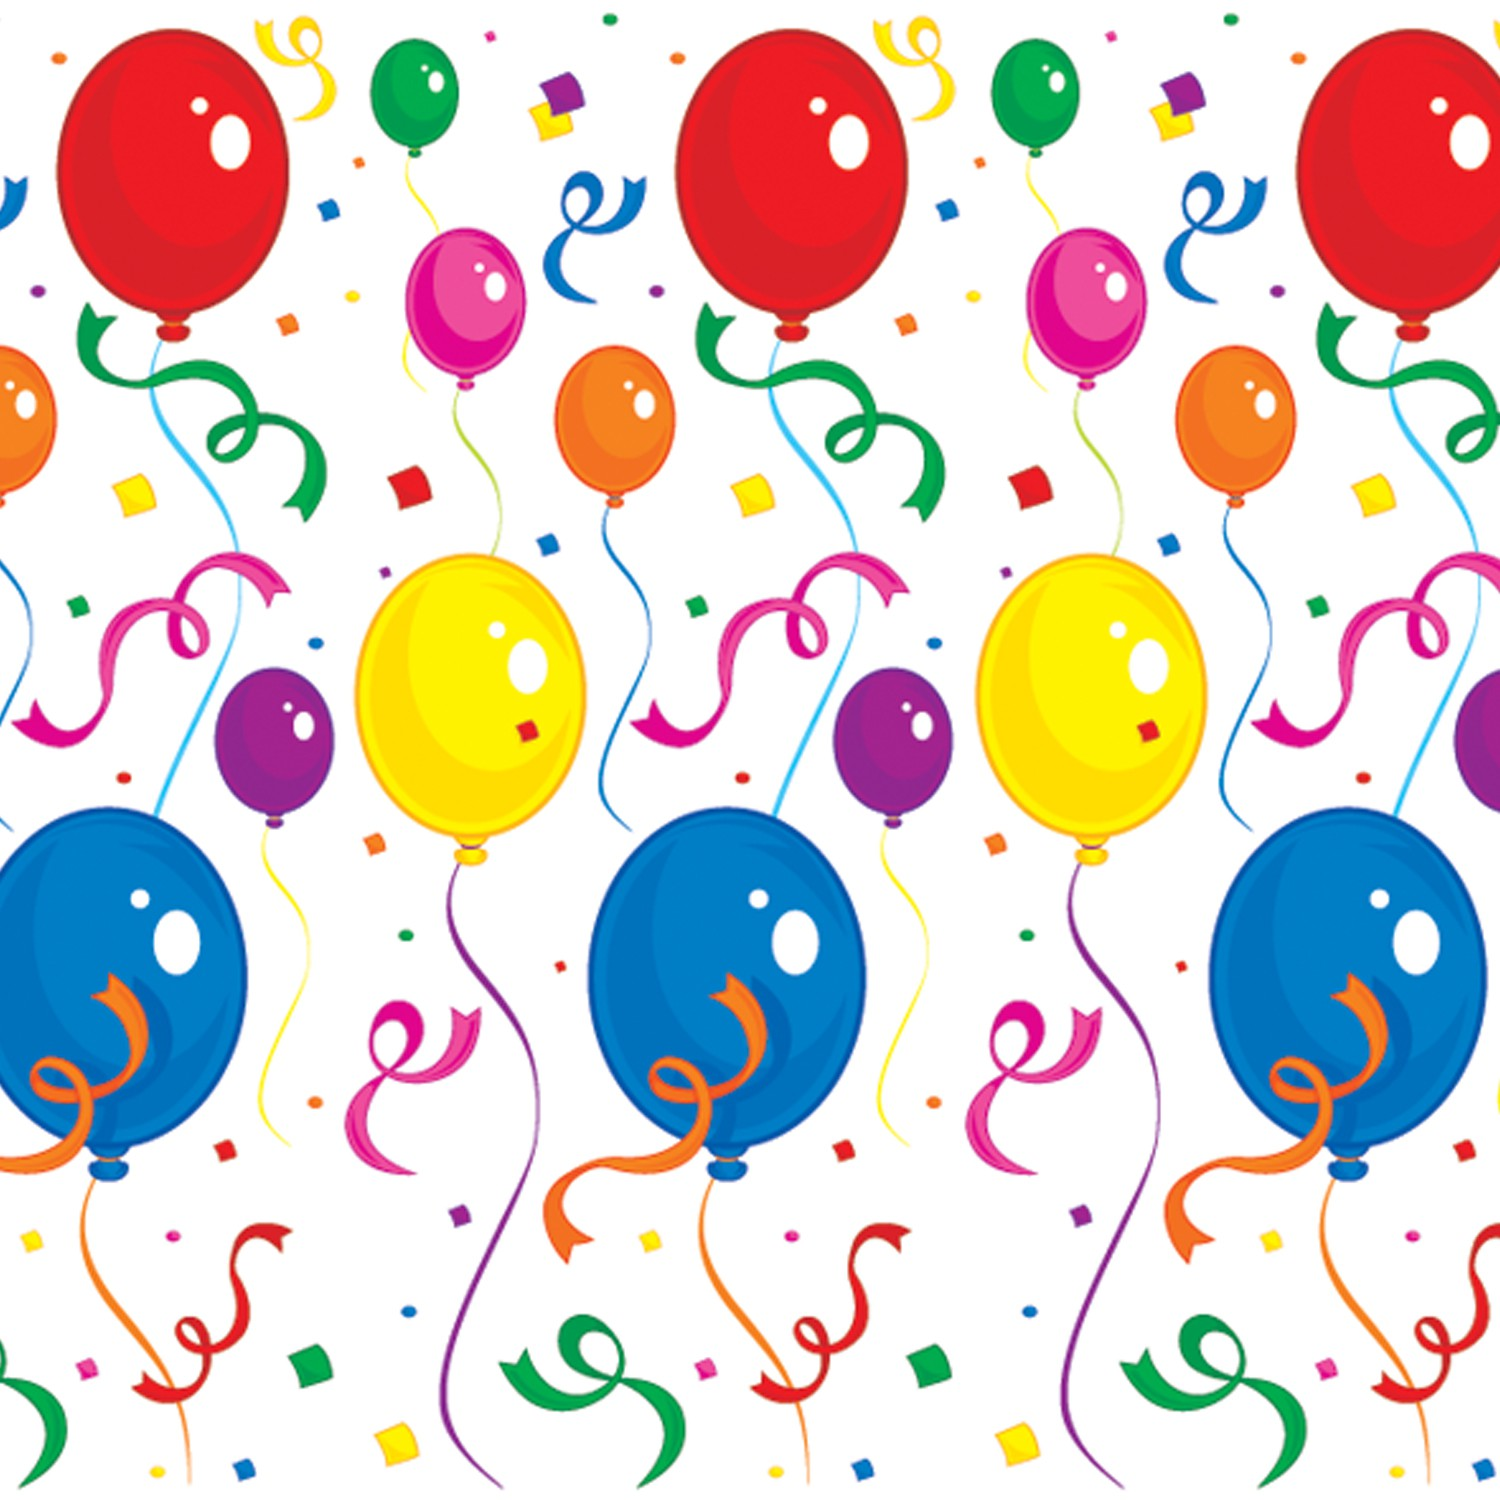 hight resolution of party decorations cliparts 2745986 license personal use